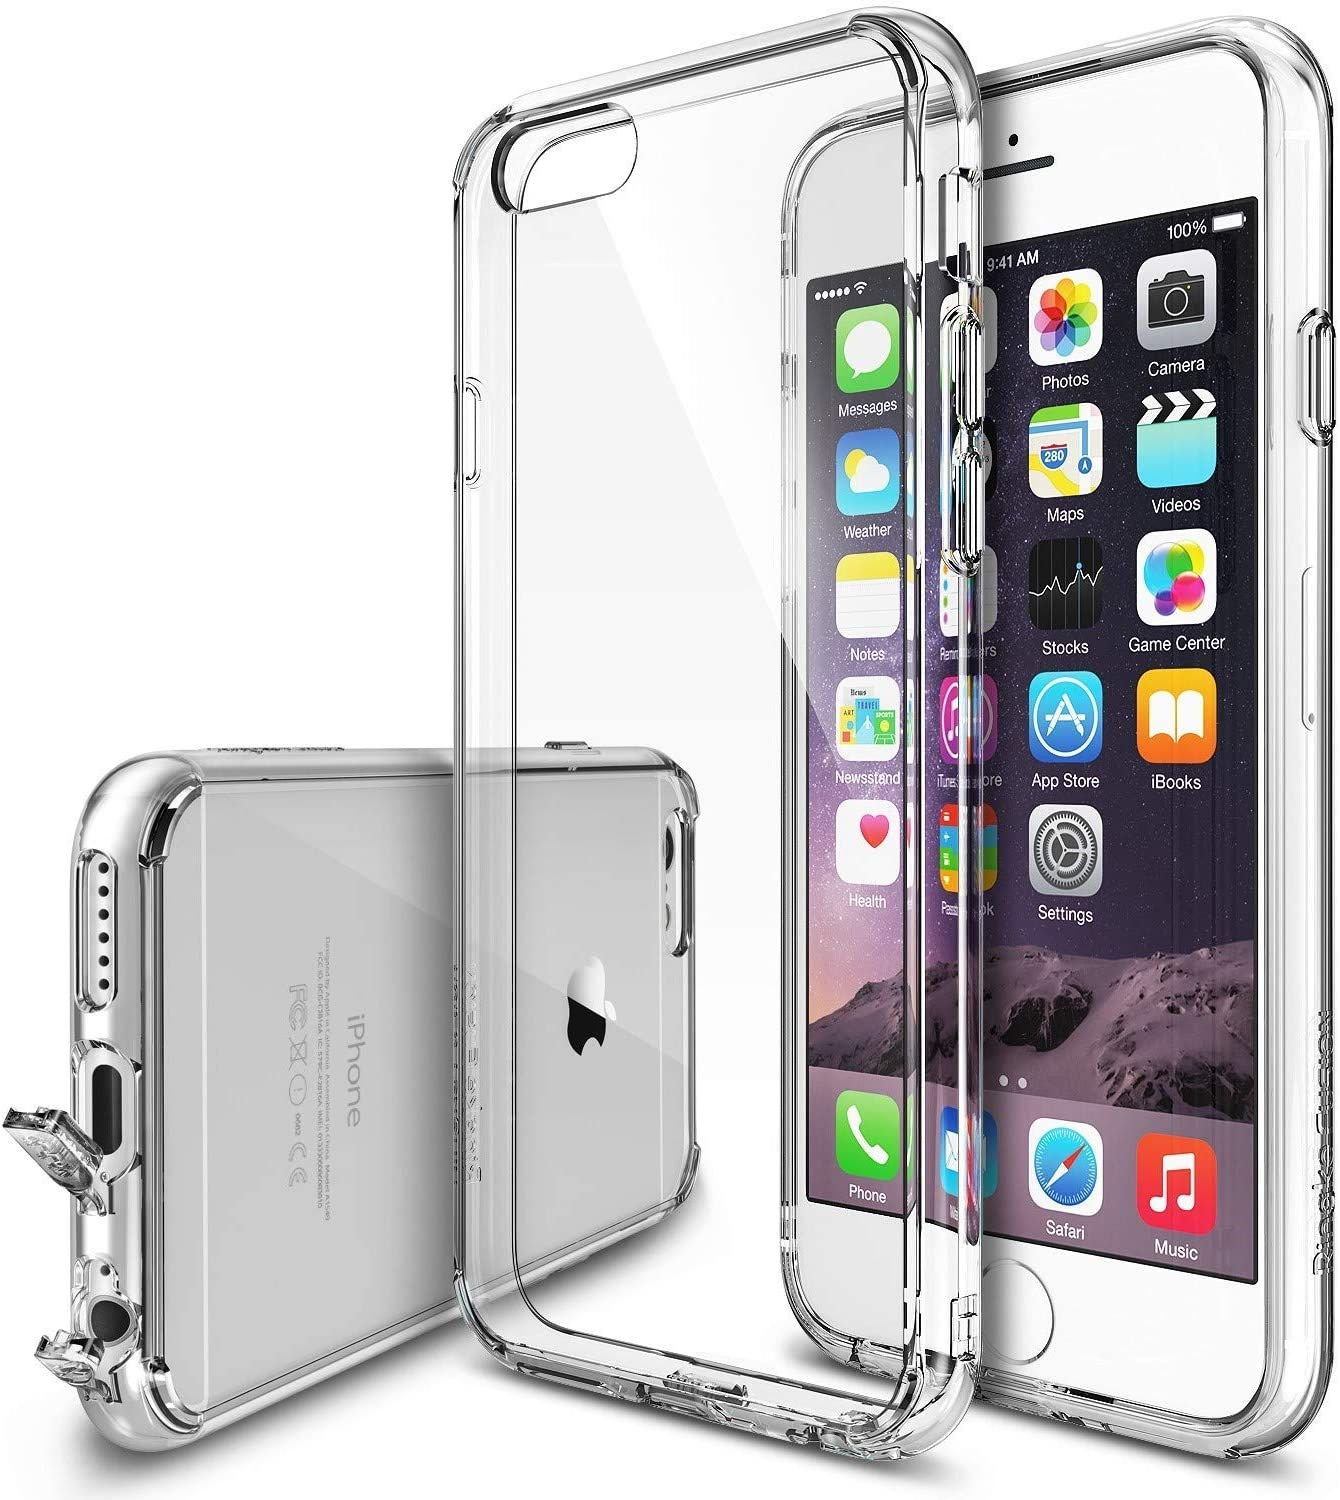 Ringke Fusion Compatible with iPhone 6S, iPhone 6 Case, Transparent Shockproof Protective Bumper Cover - Clear